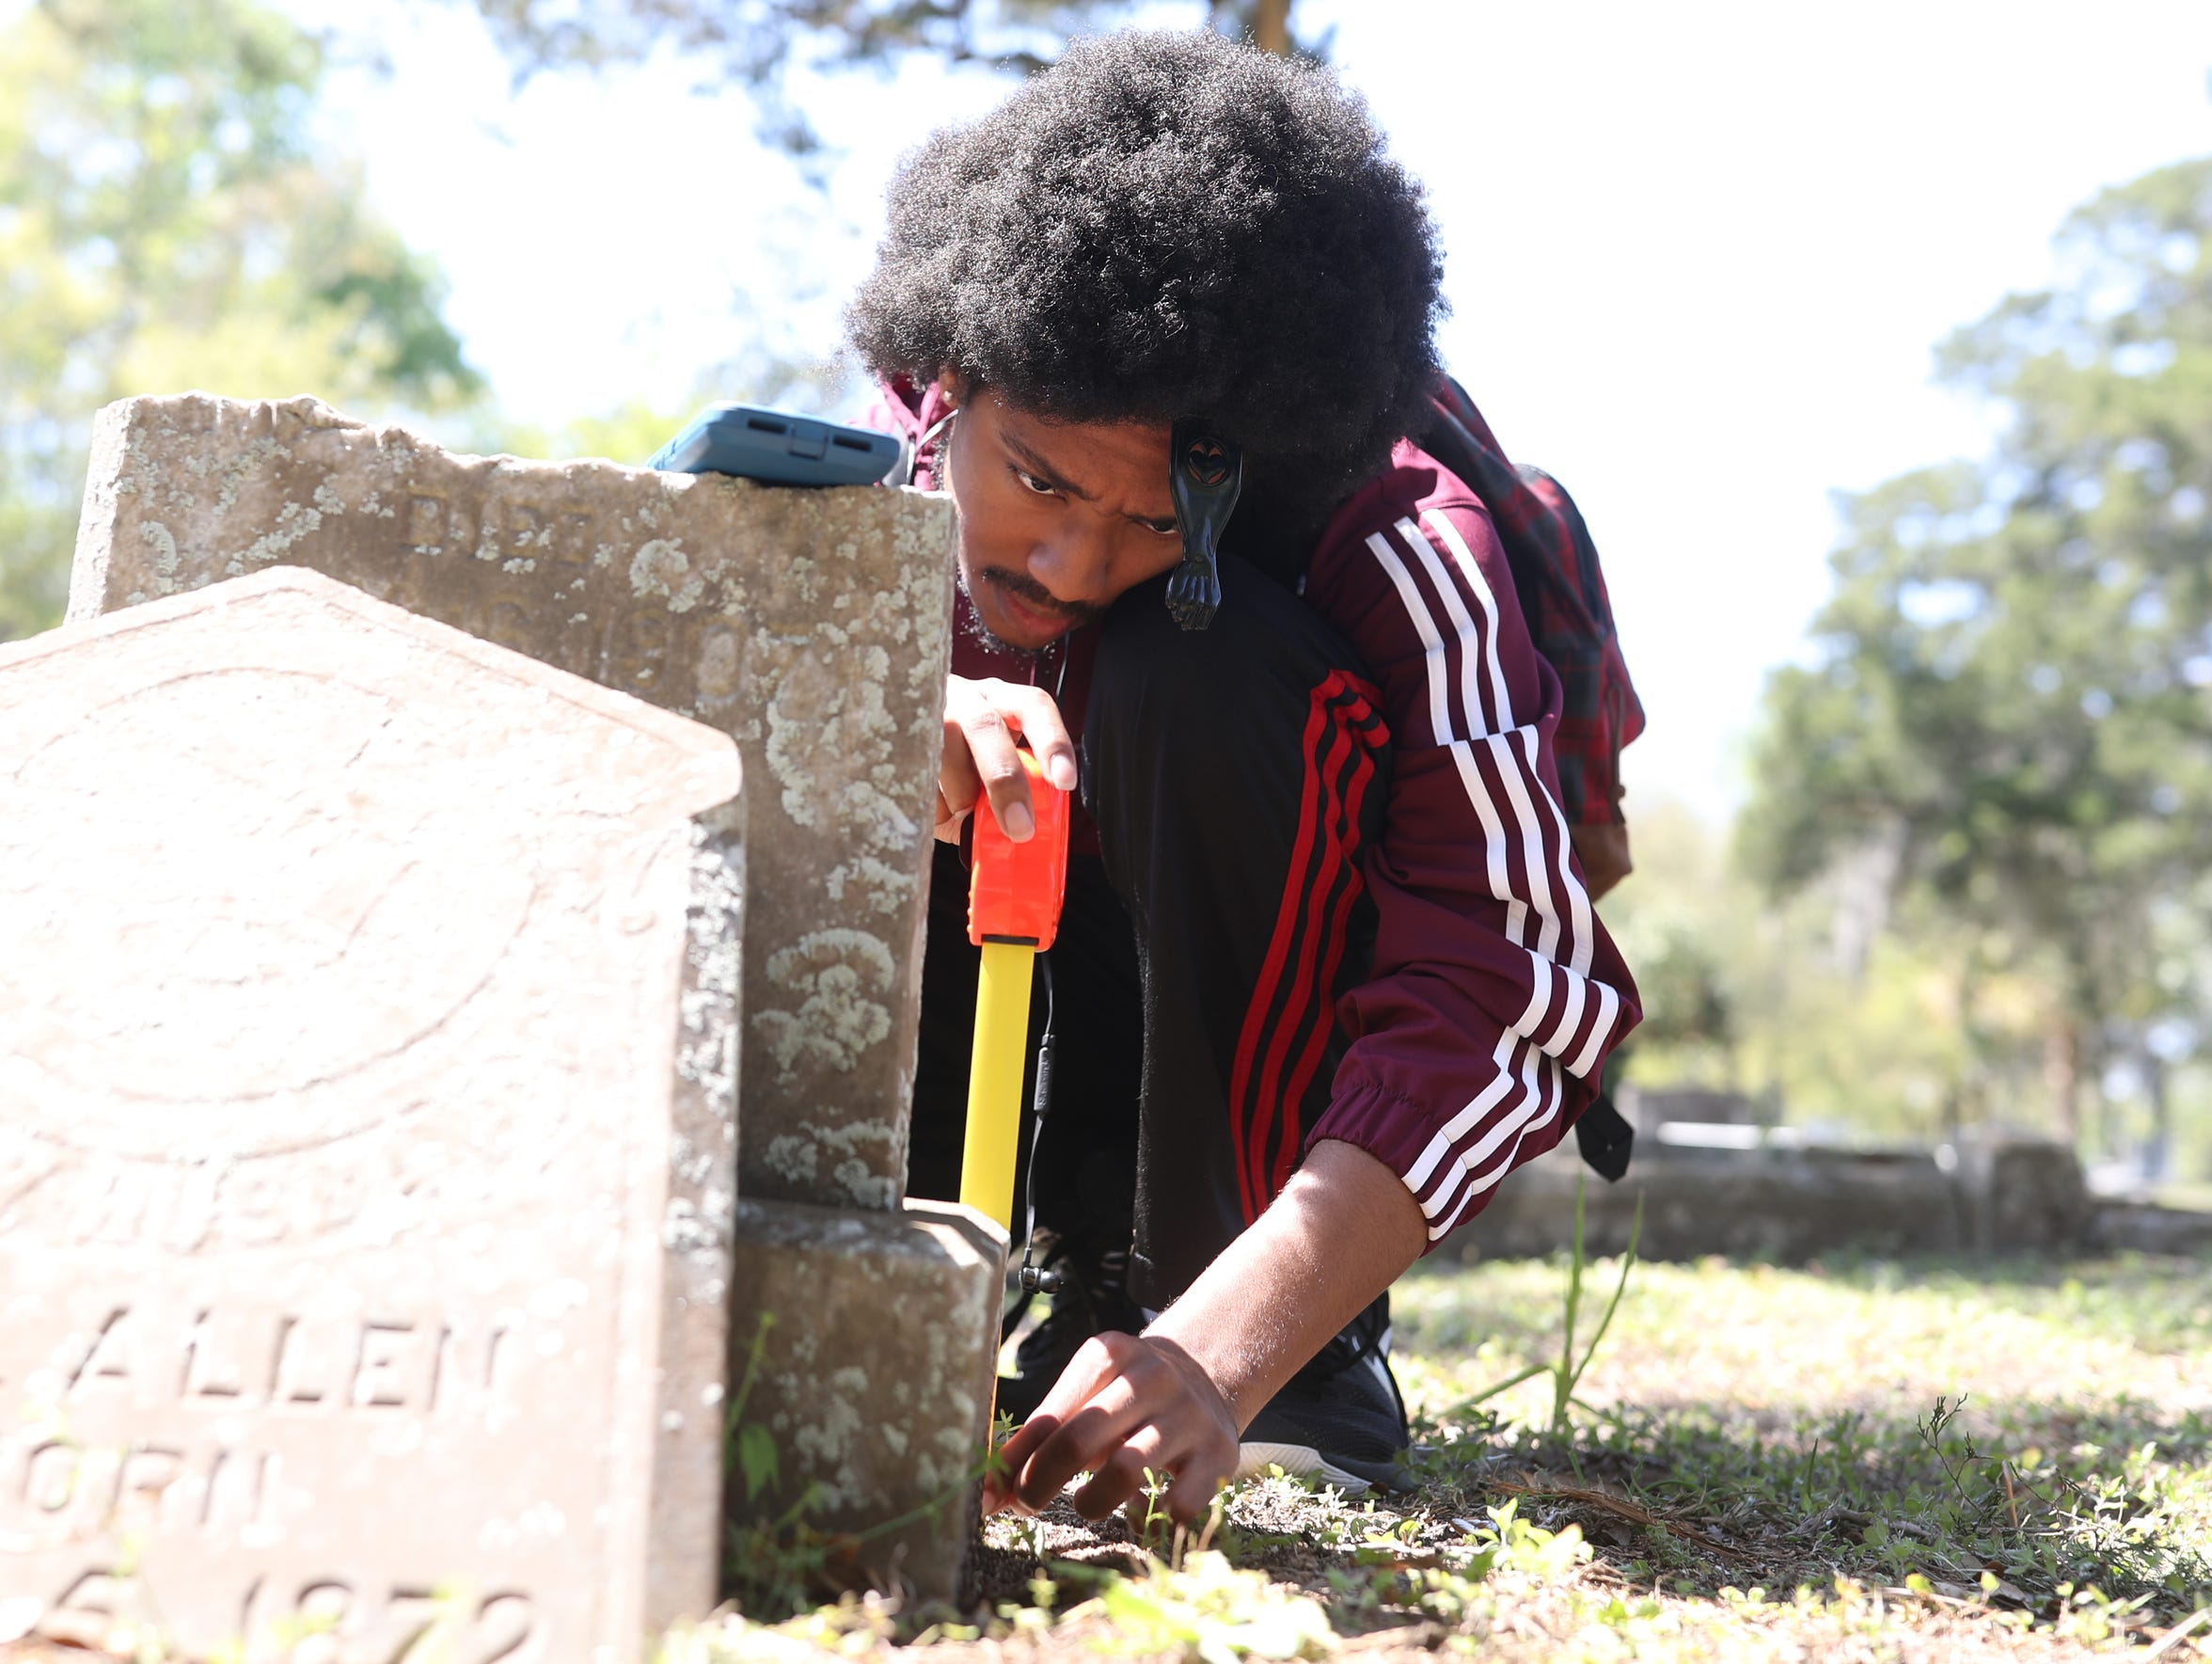 Terryon Larkins measures the height of a grave stone